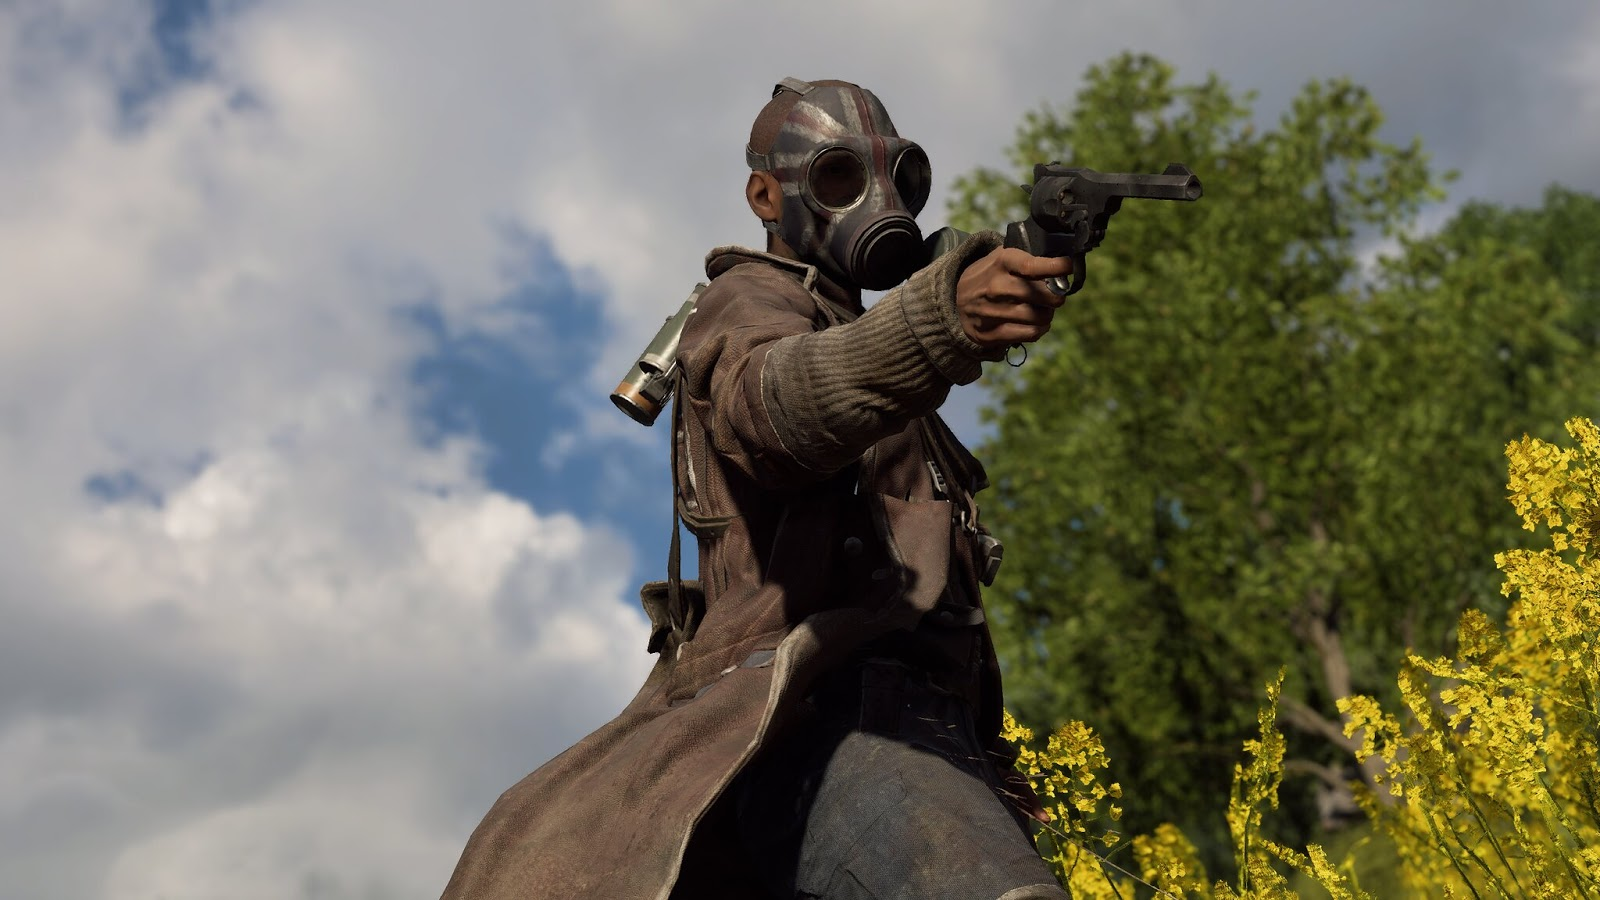 Battlefield V - Img: Chris177uk